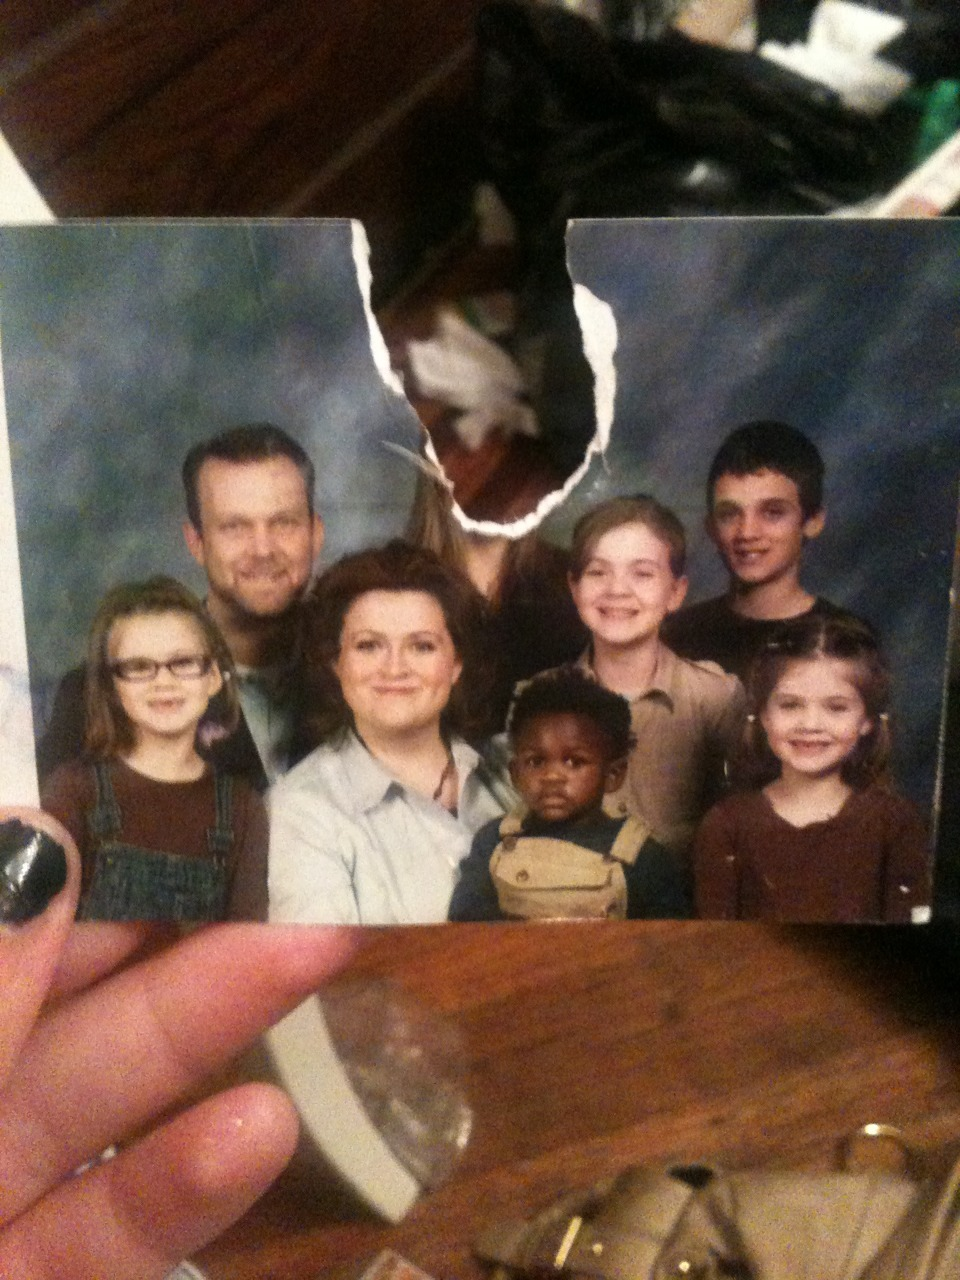 k1ng-and-l1onheart:  lexuswillow:  This is an old family picture. My family does not support my being in the LGBTQIA community. They actually are opposed to it. They tell me every day that its disgusting and that it's sinful and I'll go to hell for liking women.  I moved out when I was seventeen, and in January I moved back in with them because I couldn't handle everything that was going on. Every day one of my five siblings tells me to go back to Minnesota. My little brother Charlie (the black baby in the picture) is now 8 and he constantly physically attacks me and tells me that I'm not his sister and to leave. My other siblings make it very obvious and clear that they don't want me here and my parents tell me constantly that they're gonna kick me out soon.  I've been saving every penny for a bus ticket to Oregon to stay with my best friend and today I found this picture in my sisters' room ON DISPLAY. Not hidden. On display. They cut my face out of the picture. And that… That was just the last straw.  I don't care if anyone reblogs this or whatever, I don't wanna get popular, I just want people to know that this is not what a family looks like. This is not something people should have to go through. This is no life.   This is absolutely heartbreaking.